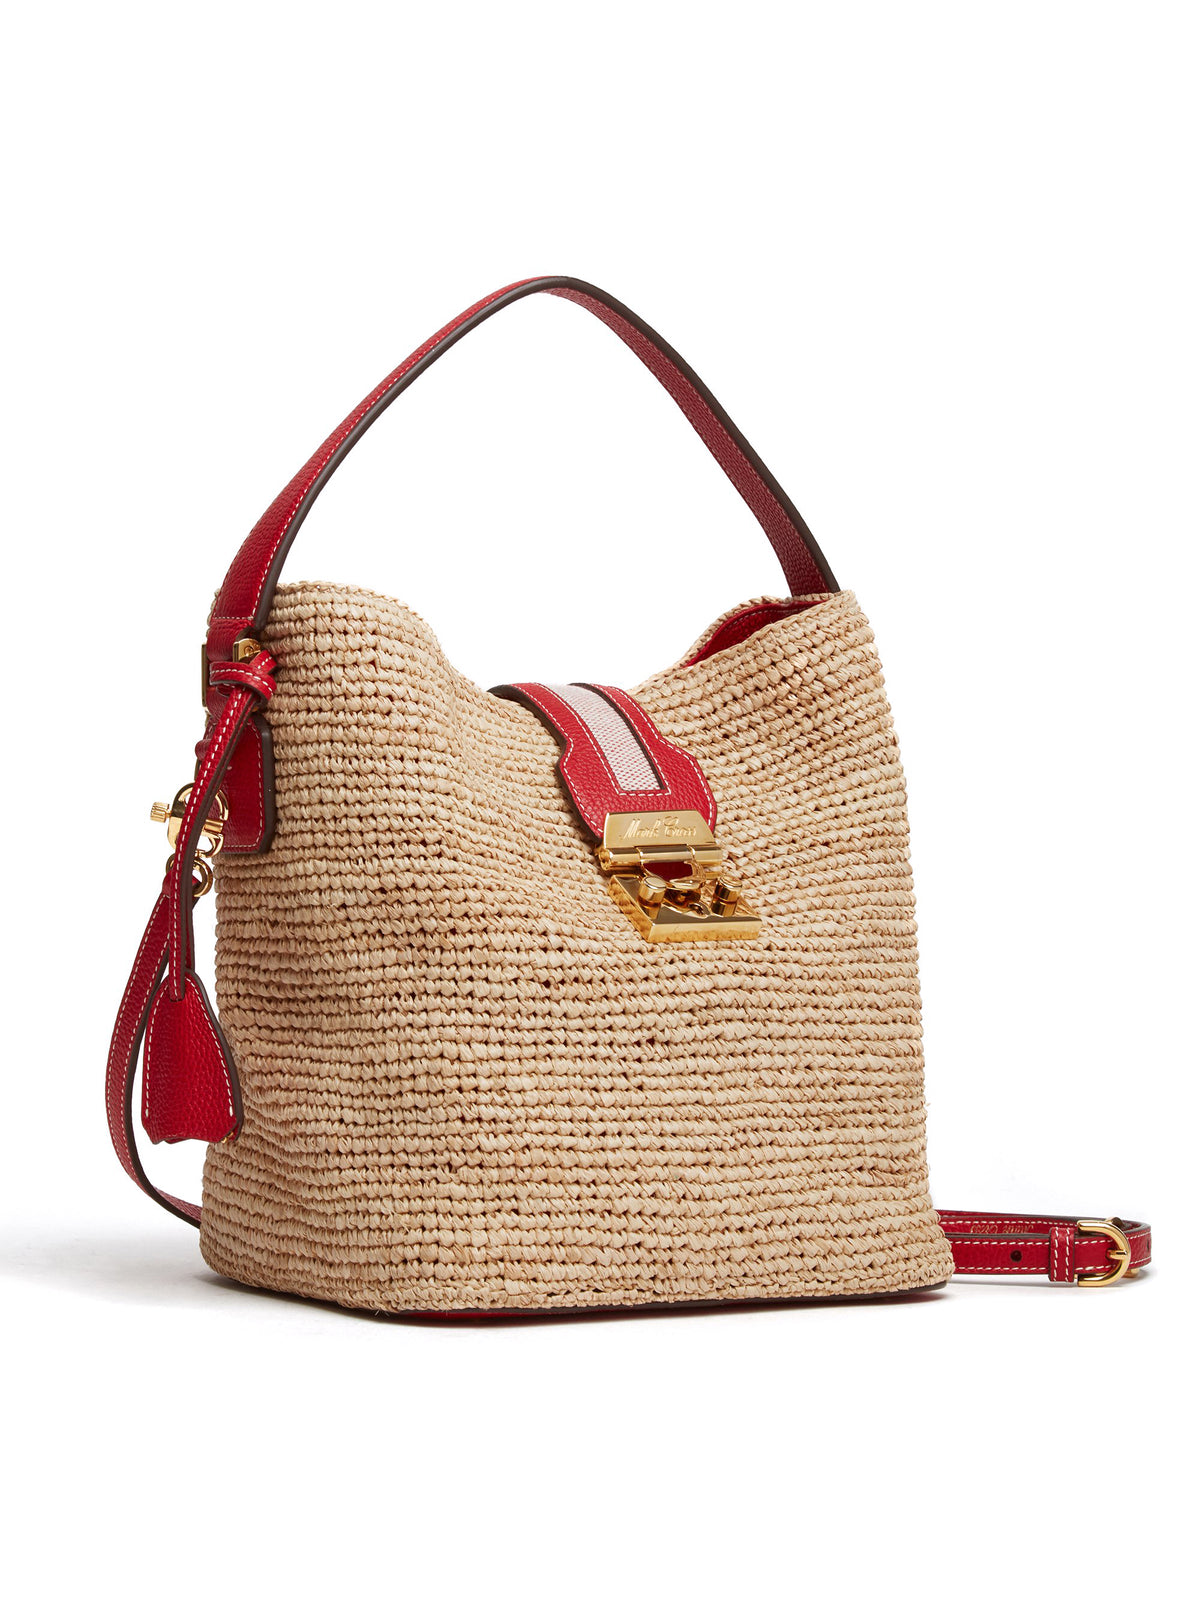 Mark Cross Murphy Raffia & Leather Bucket Bag Tumbled Grain Mc Red / Birdseye / Natural Raffia Side